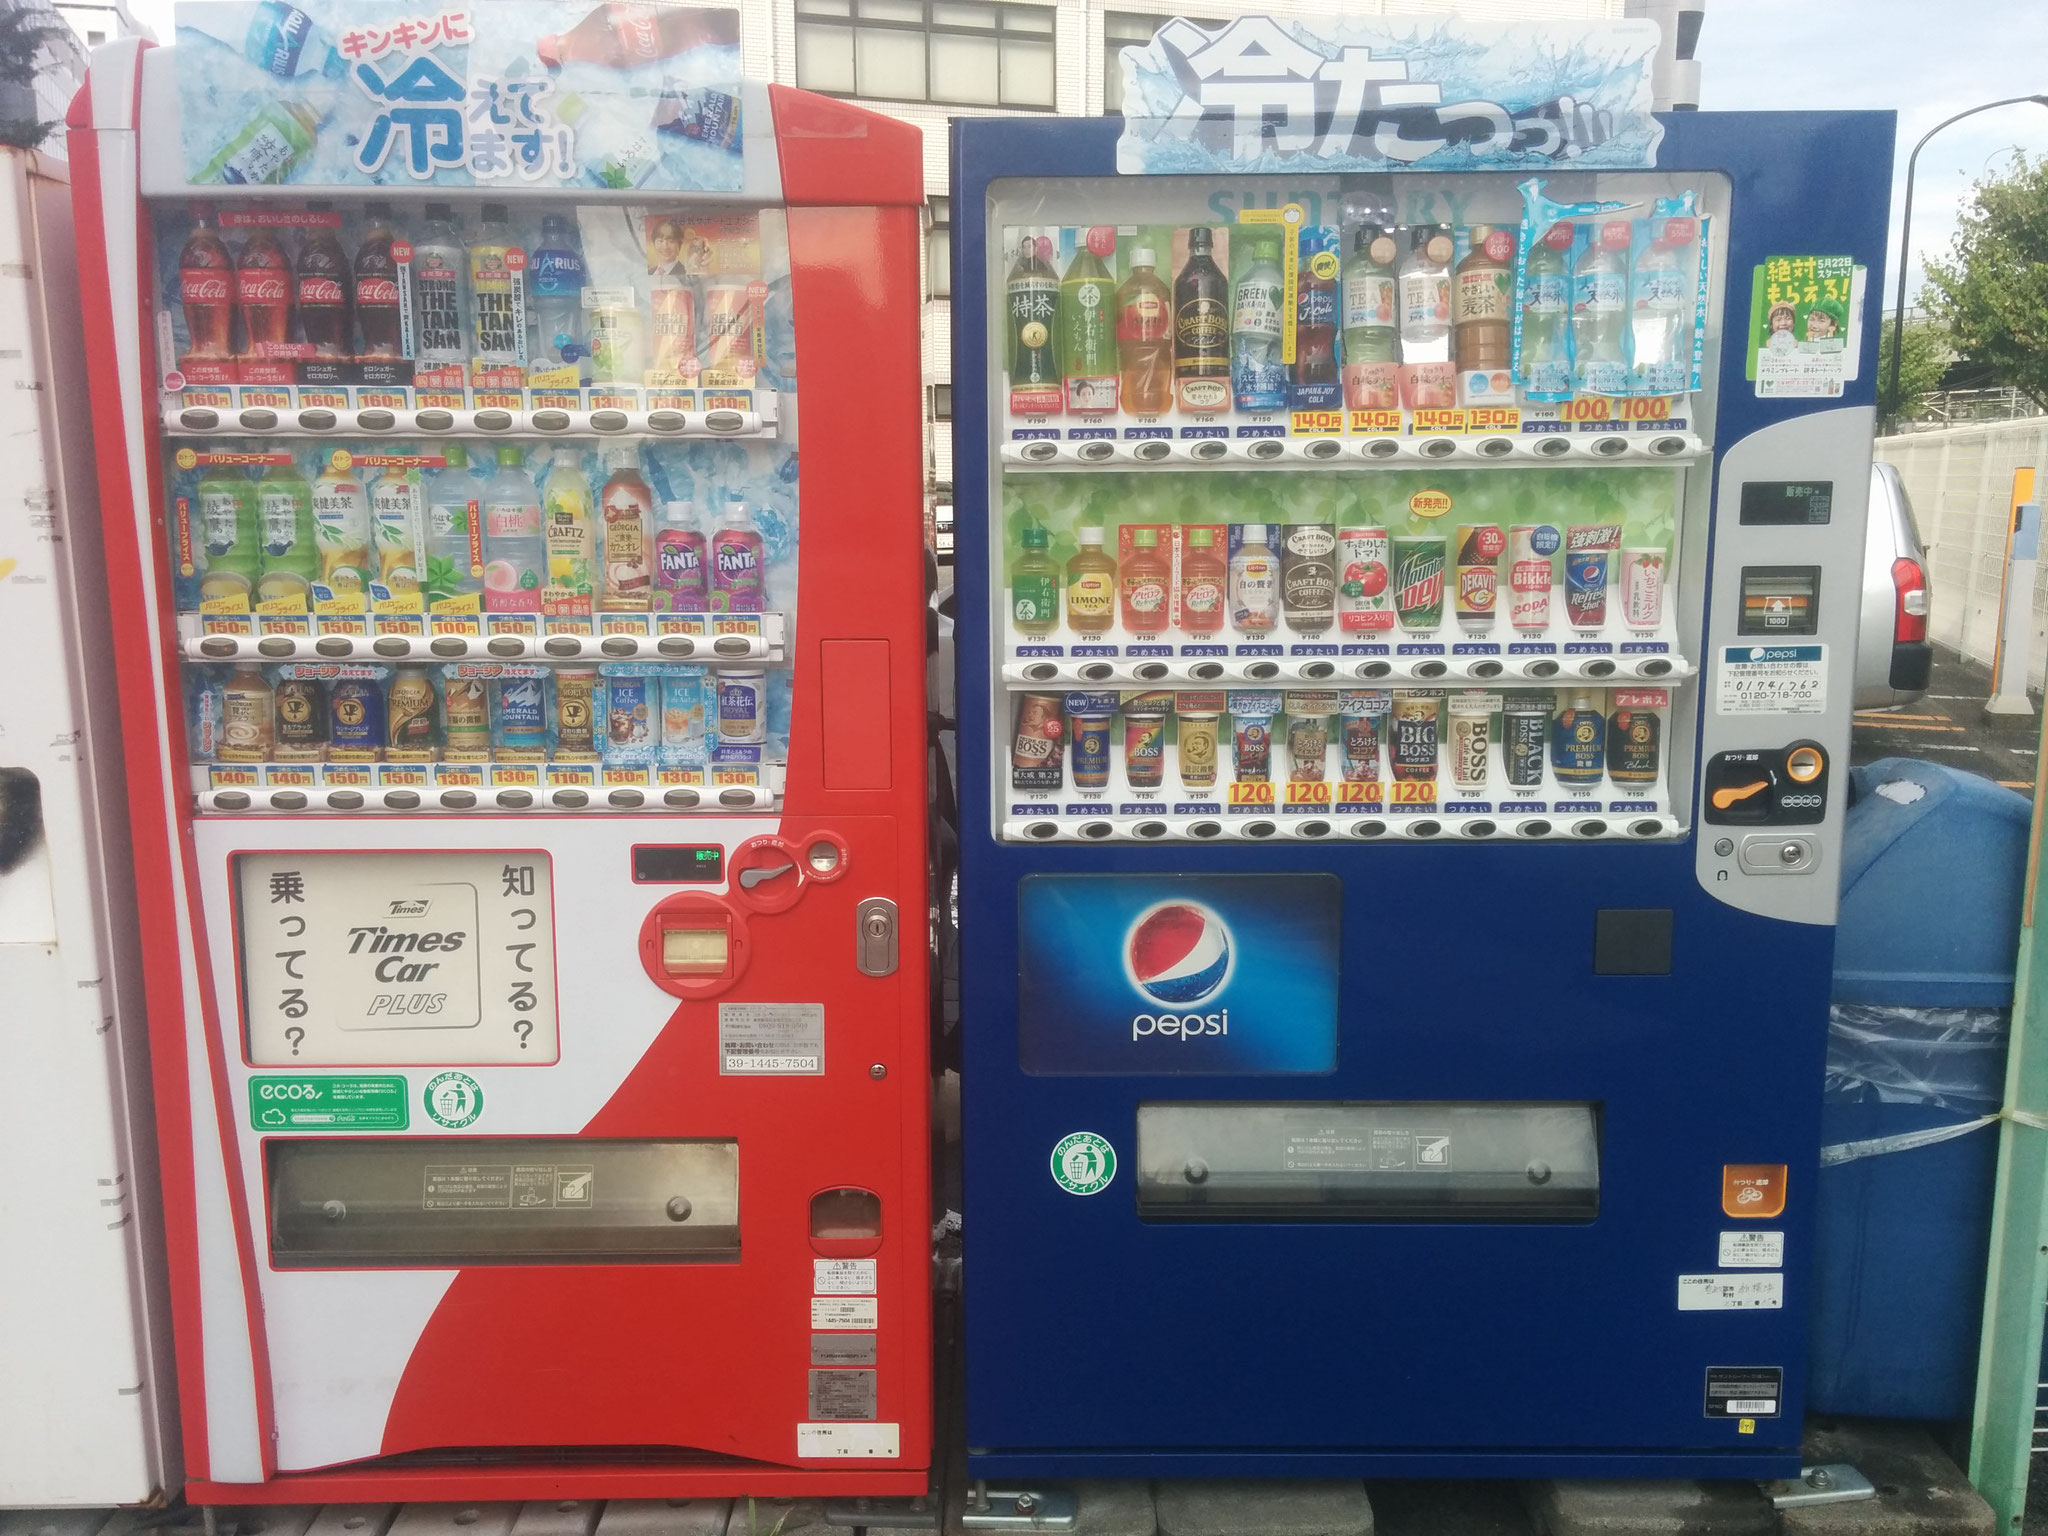 5 Two of the first vending machines I saw